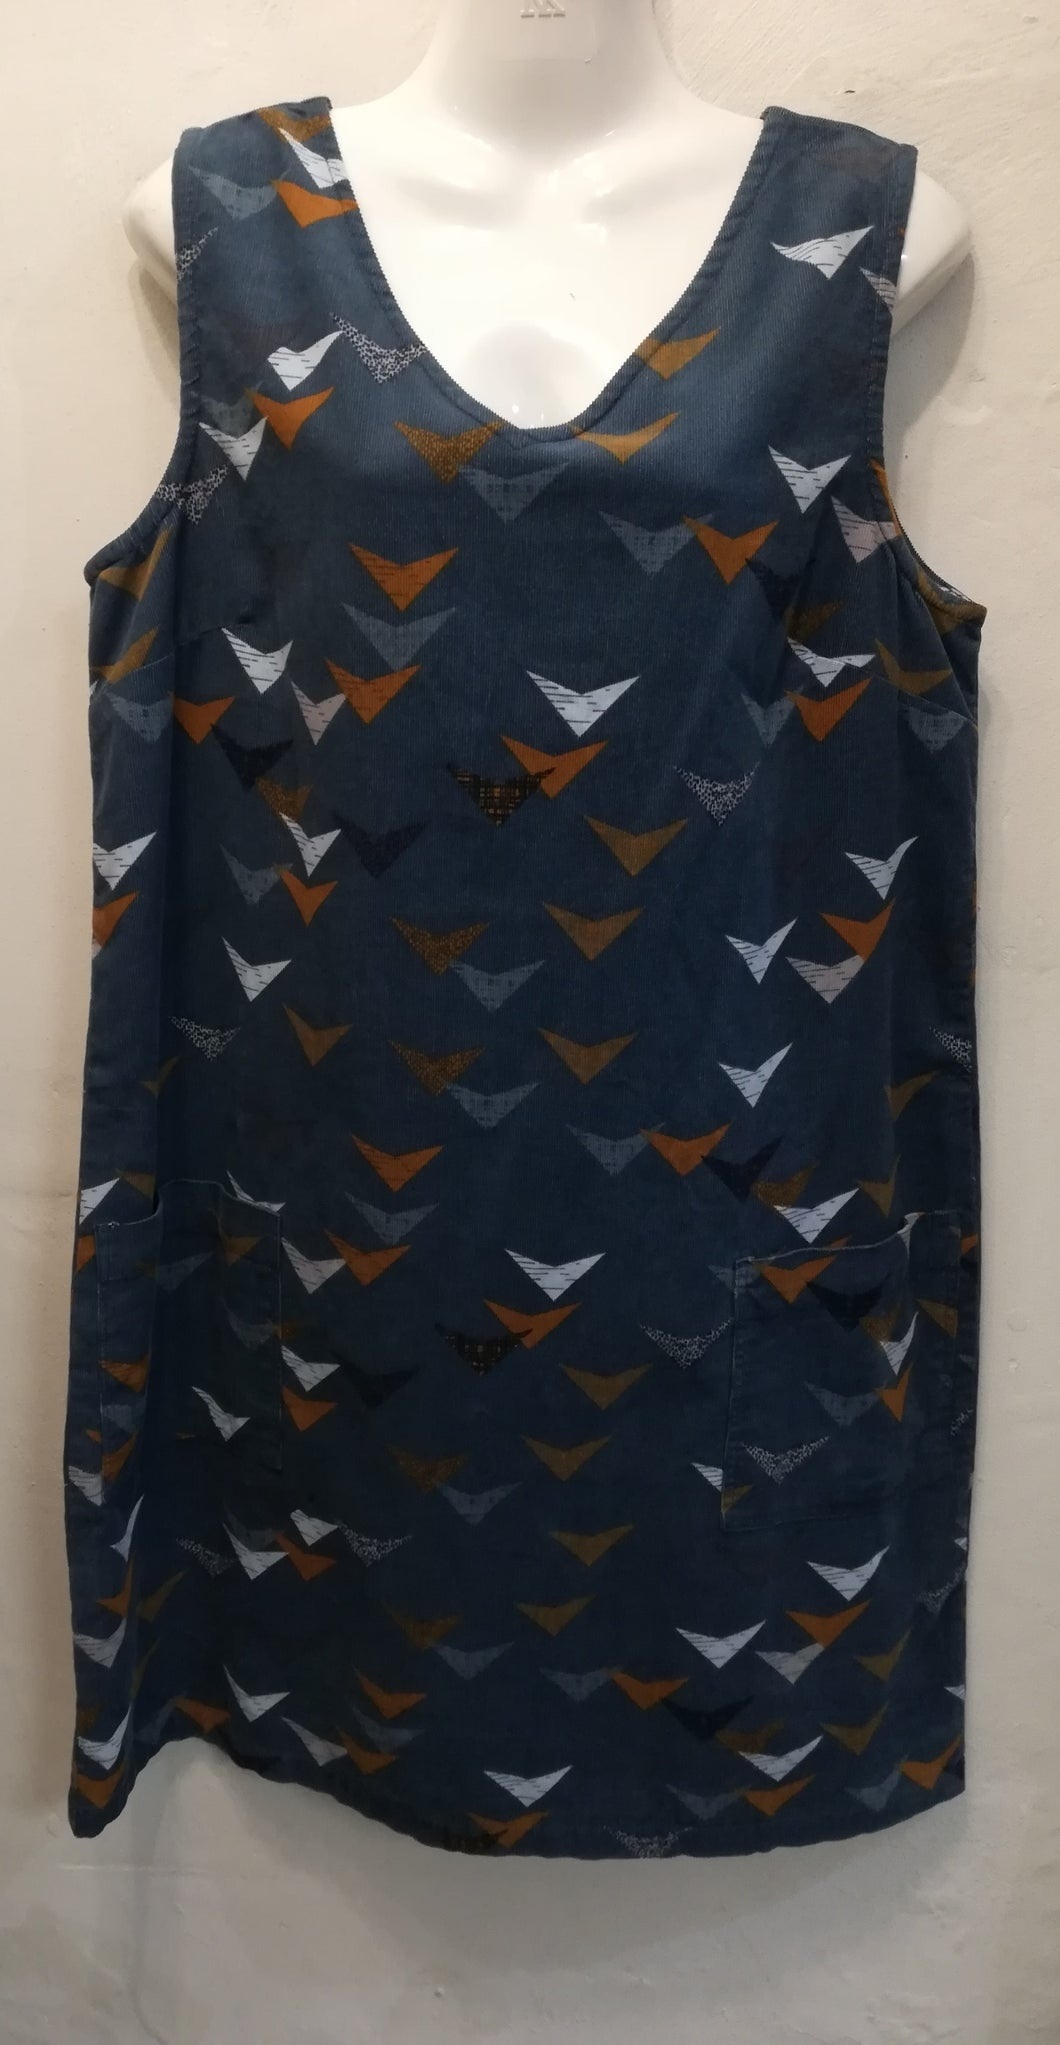 Lily & Me gatehouse dress etched triangle size 12 NO RETURN